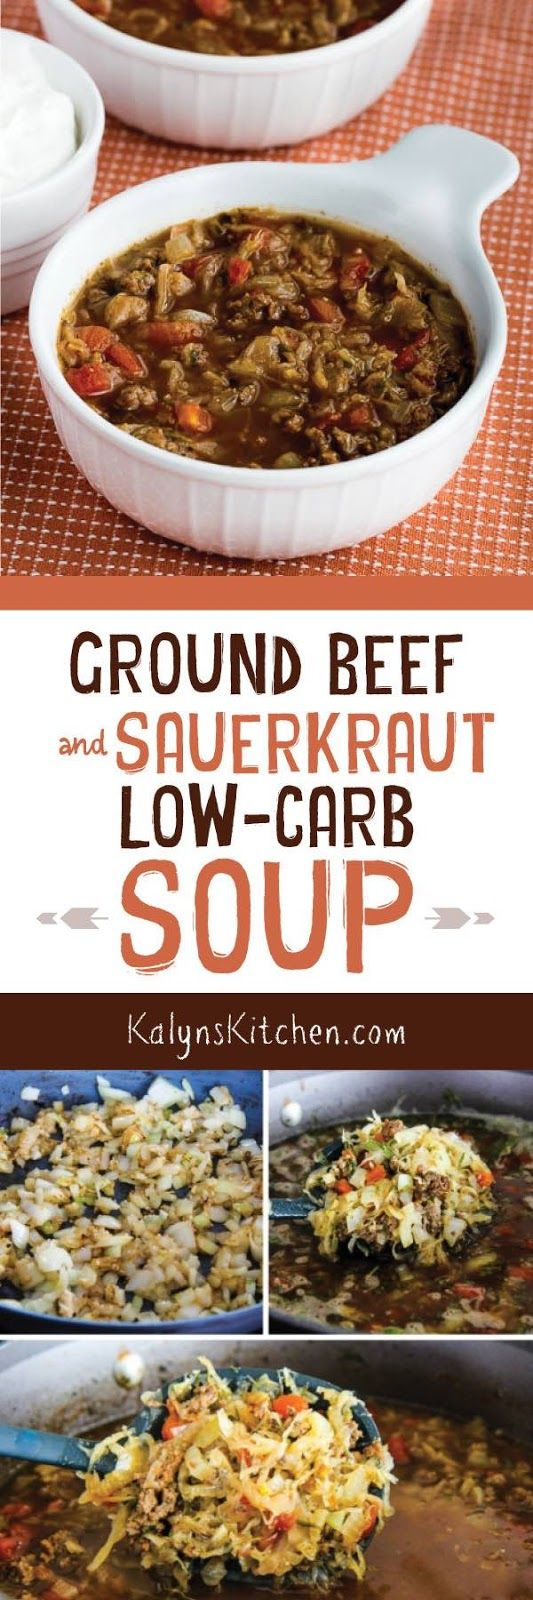 Ground Beef and Sauerkraut Low-Carb Soup is one of my favorites I make every January, and this delicious soup is also Keto, low-glycemic,  gluten-free and South Beach Diet friendly. Don't be afraid of the sauerkraut; it gets sweet and delicious as the soup cooks. [found on KalynsKitchen.com]